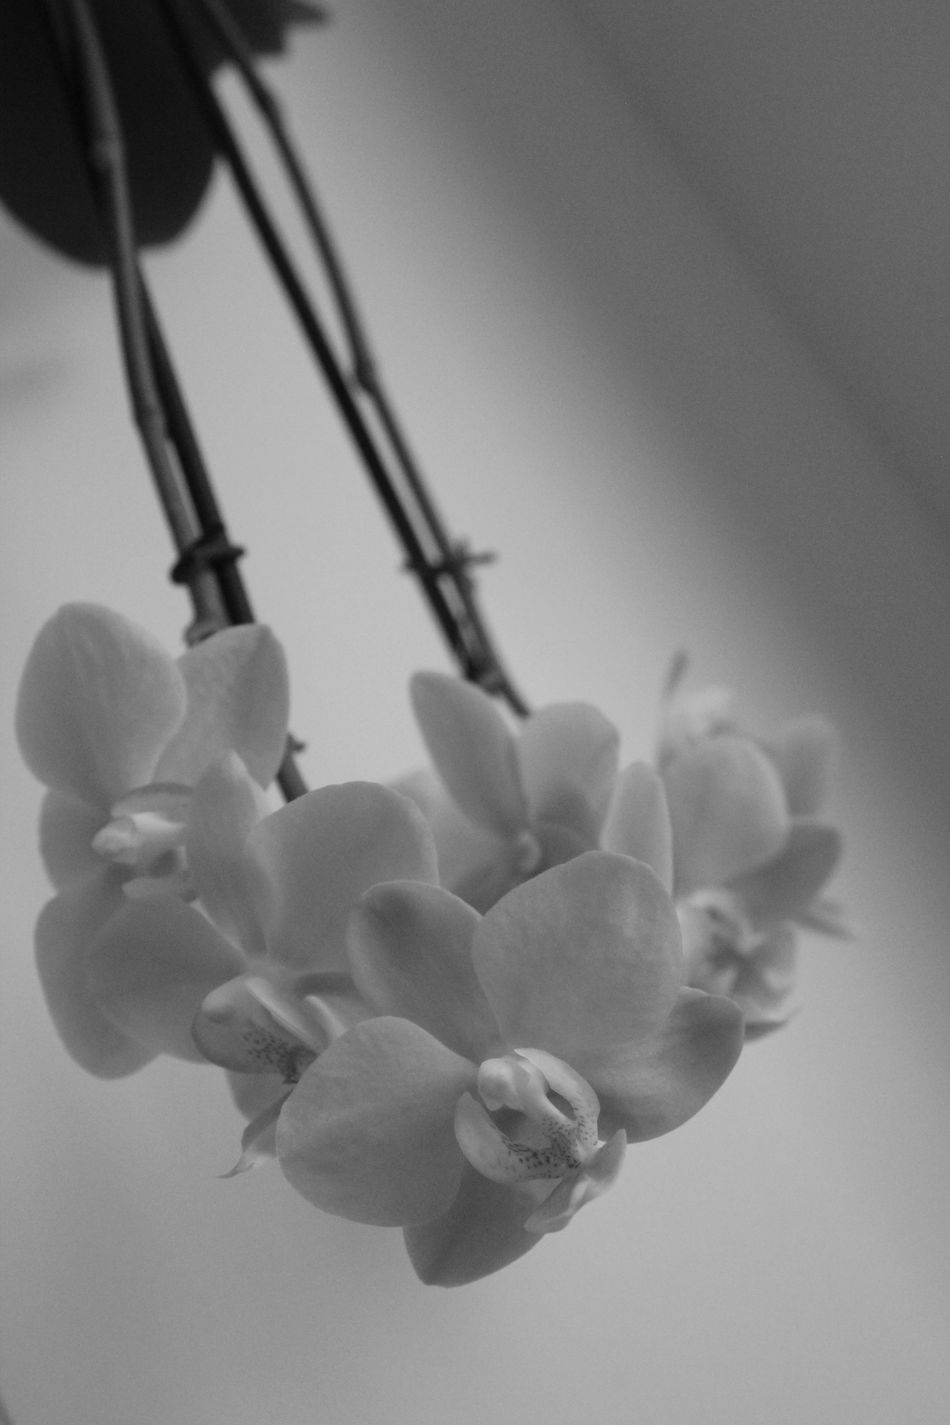 Beauty In Nature Black & White Black And White Blossom Blossoms  Close-up Flower Flower Head Flowers Growth Nature No People Orchid Orchid Blossoms Orchids Over Head Plant Art Is Everywhere